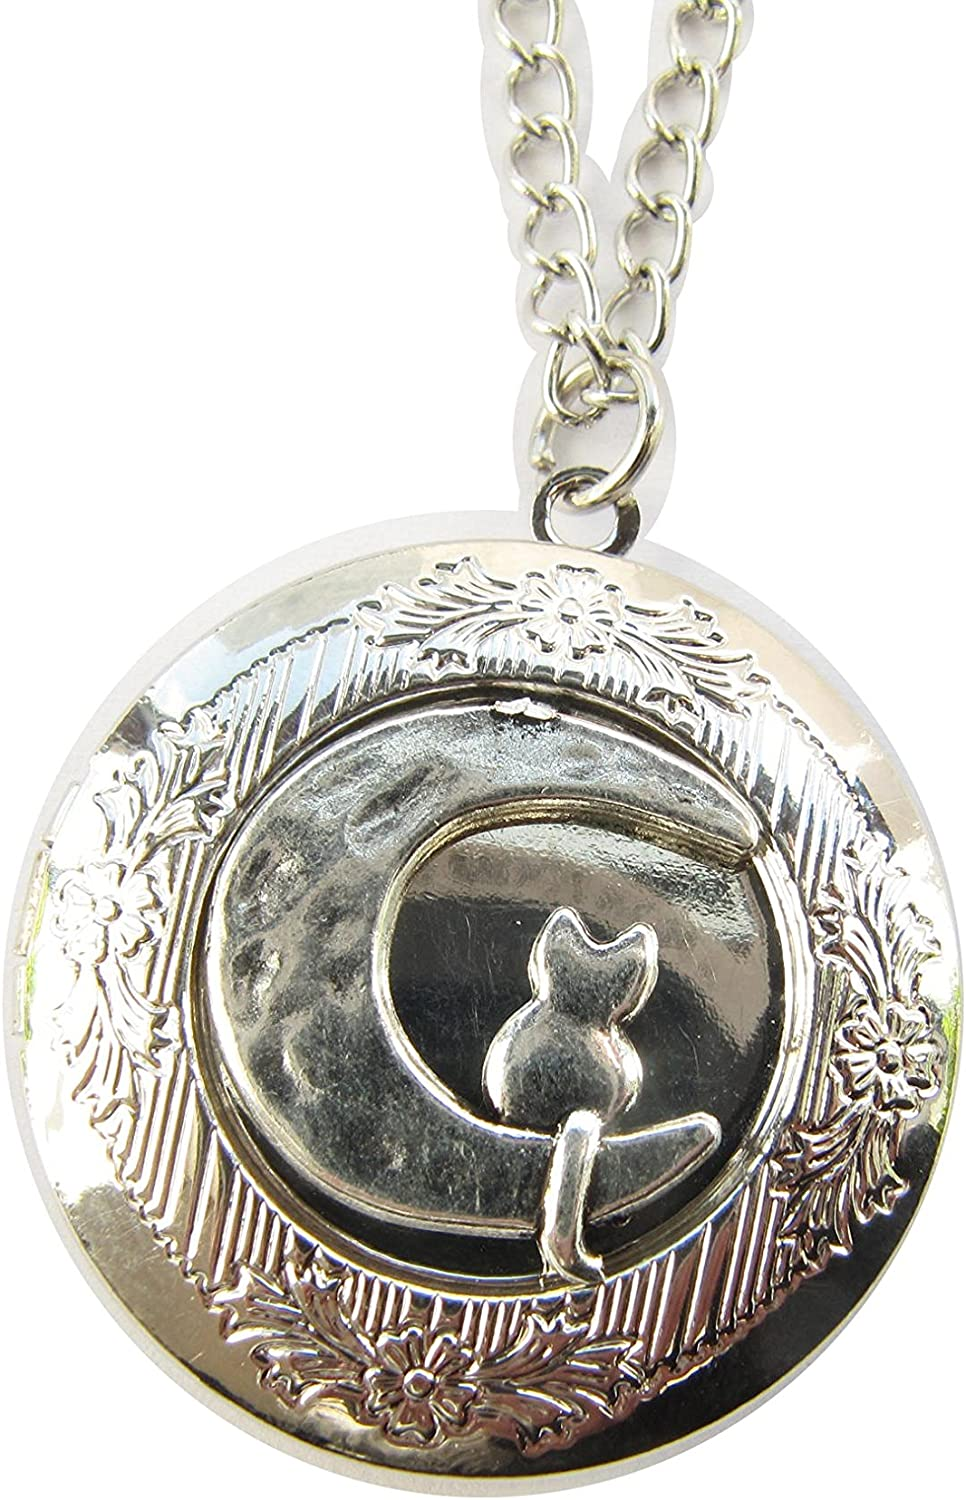 Cat and Moon Locket Necklace - Moon Cat Charm - Cat Locket- Cat Lovers Gift - Moon Locket - Cat Sitting on The Moon - Cute Jewellery